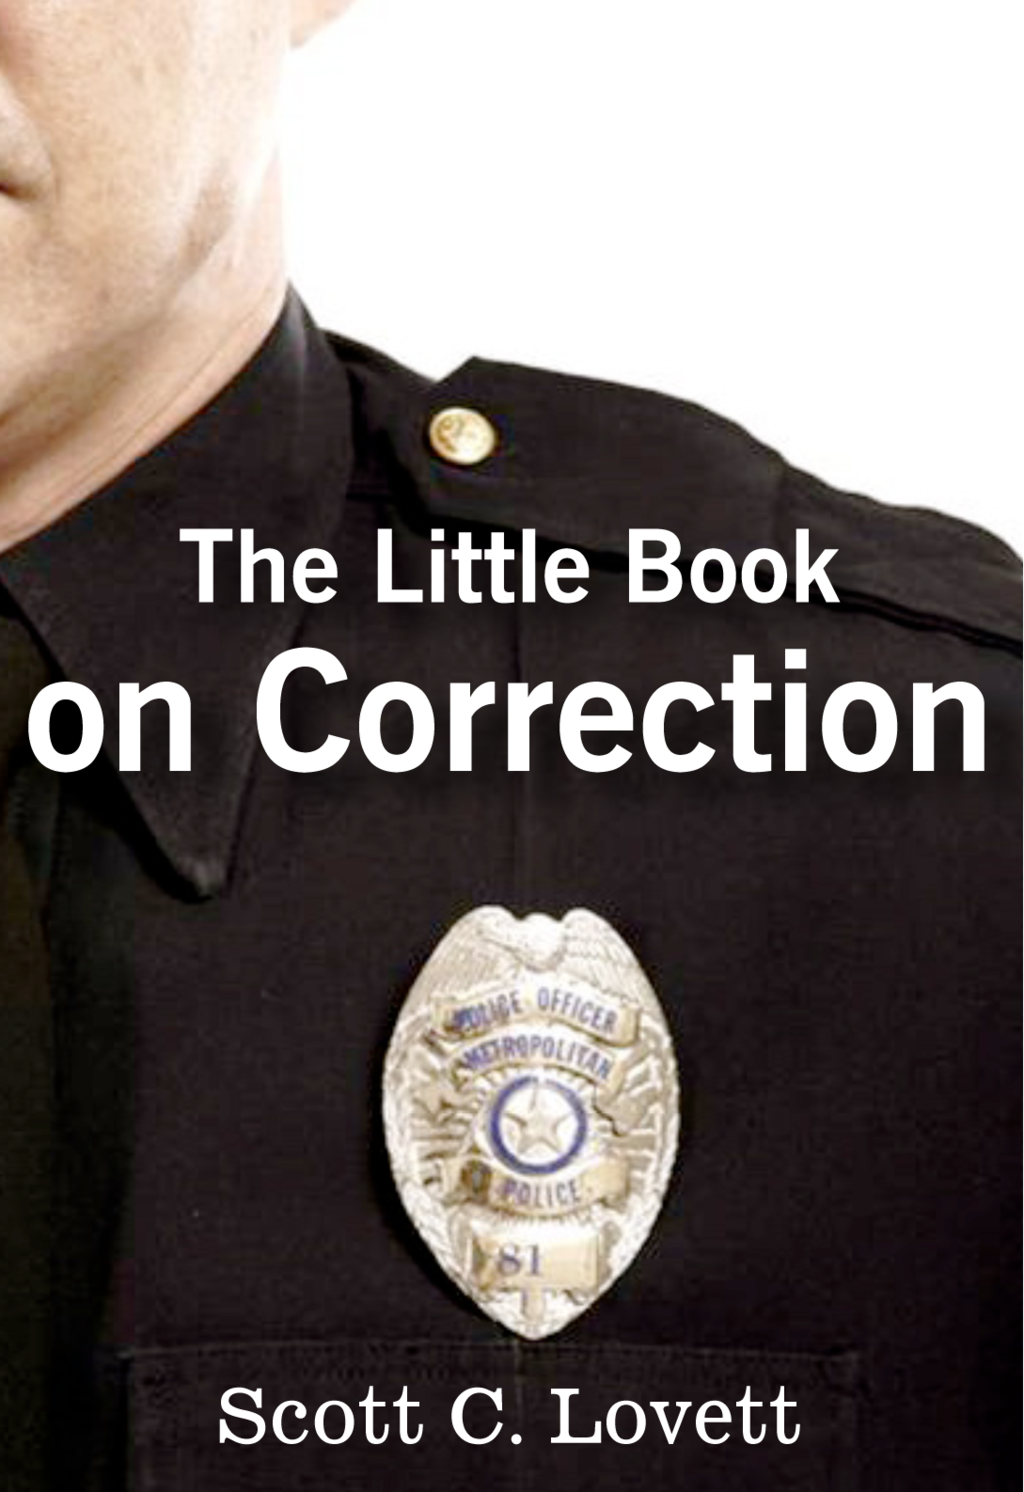 The Little Book on Correction - Fervent Fire Ministries